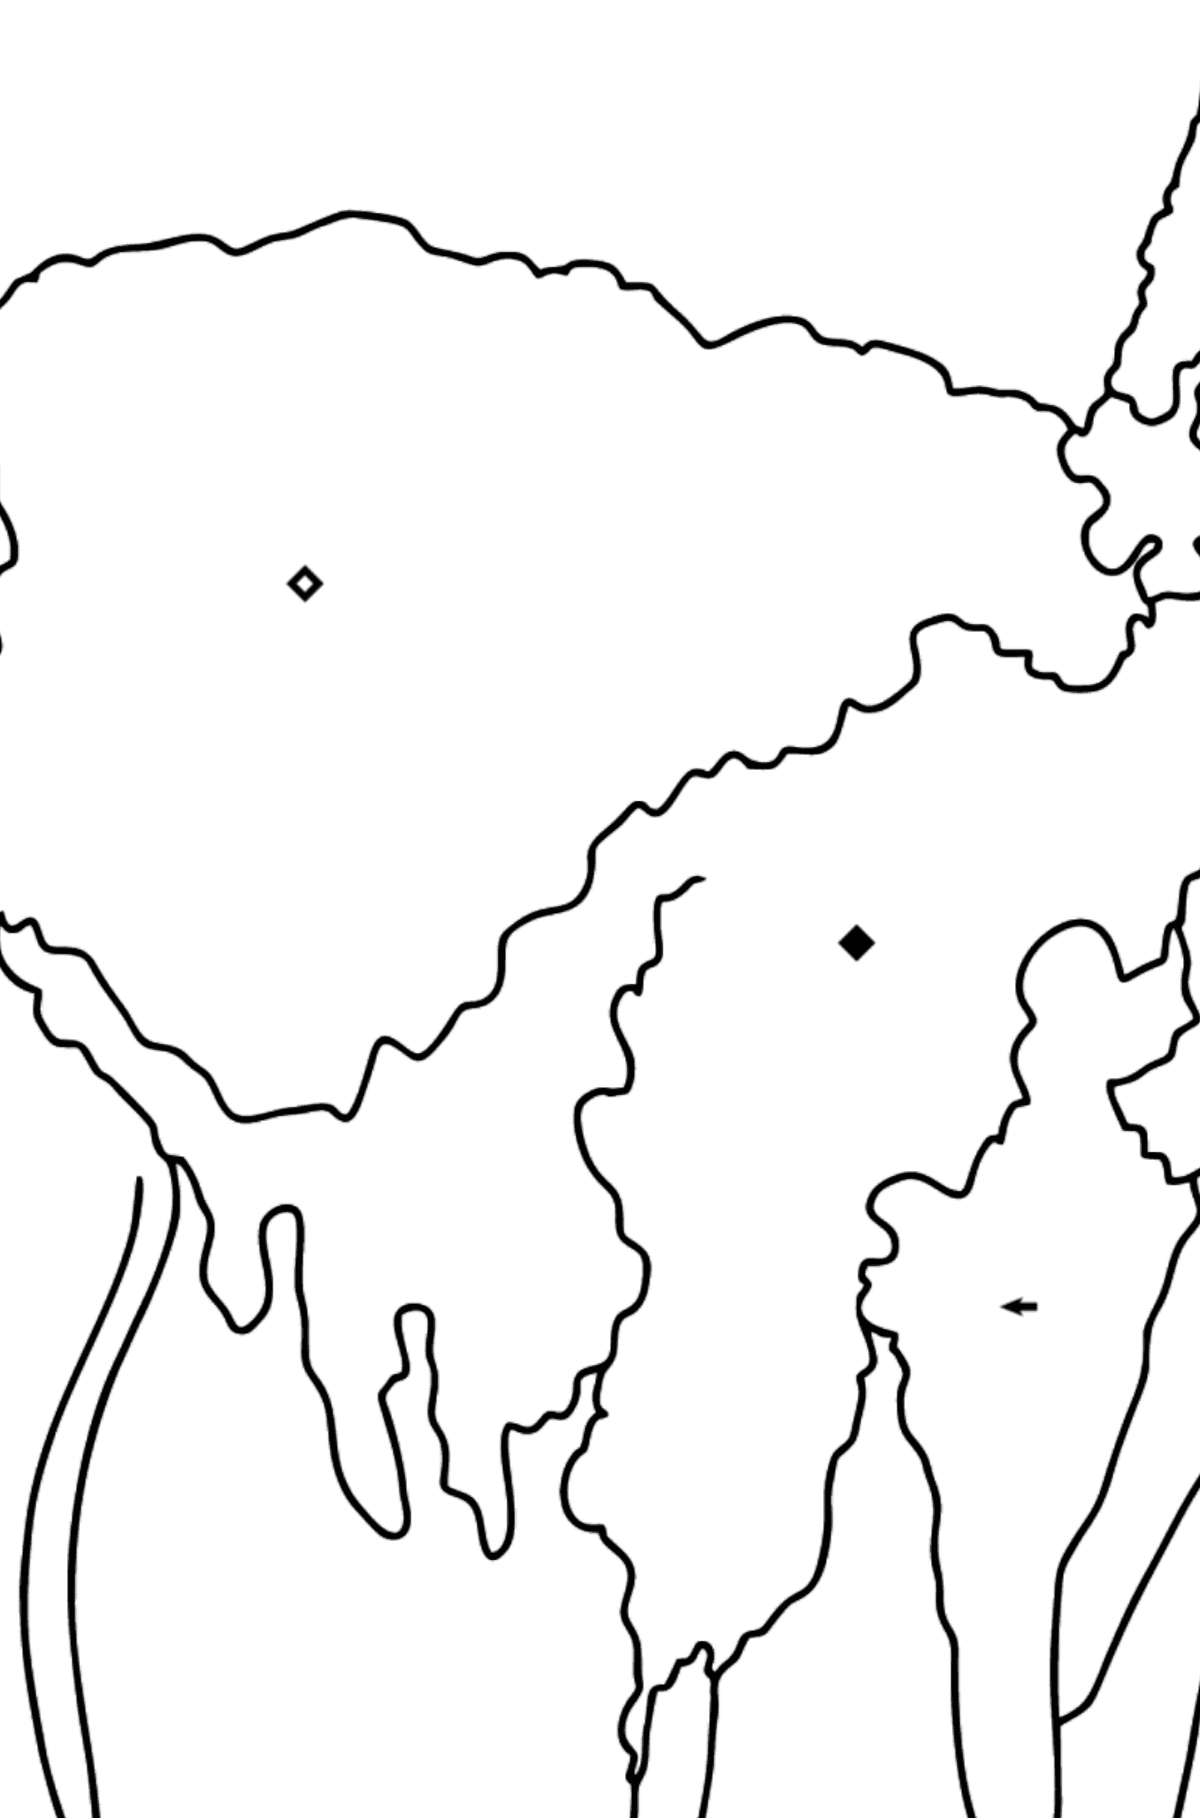 Coloring Page - A Lama is Inspecting the Area - Coloring by Symbols for Kids